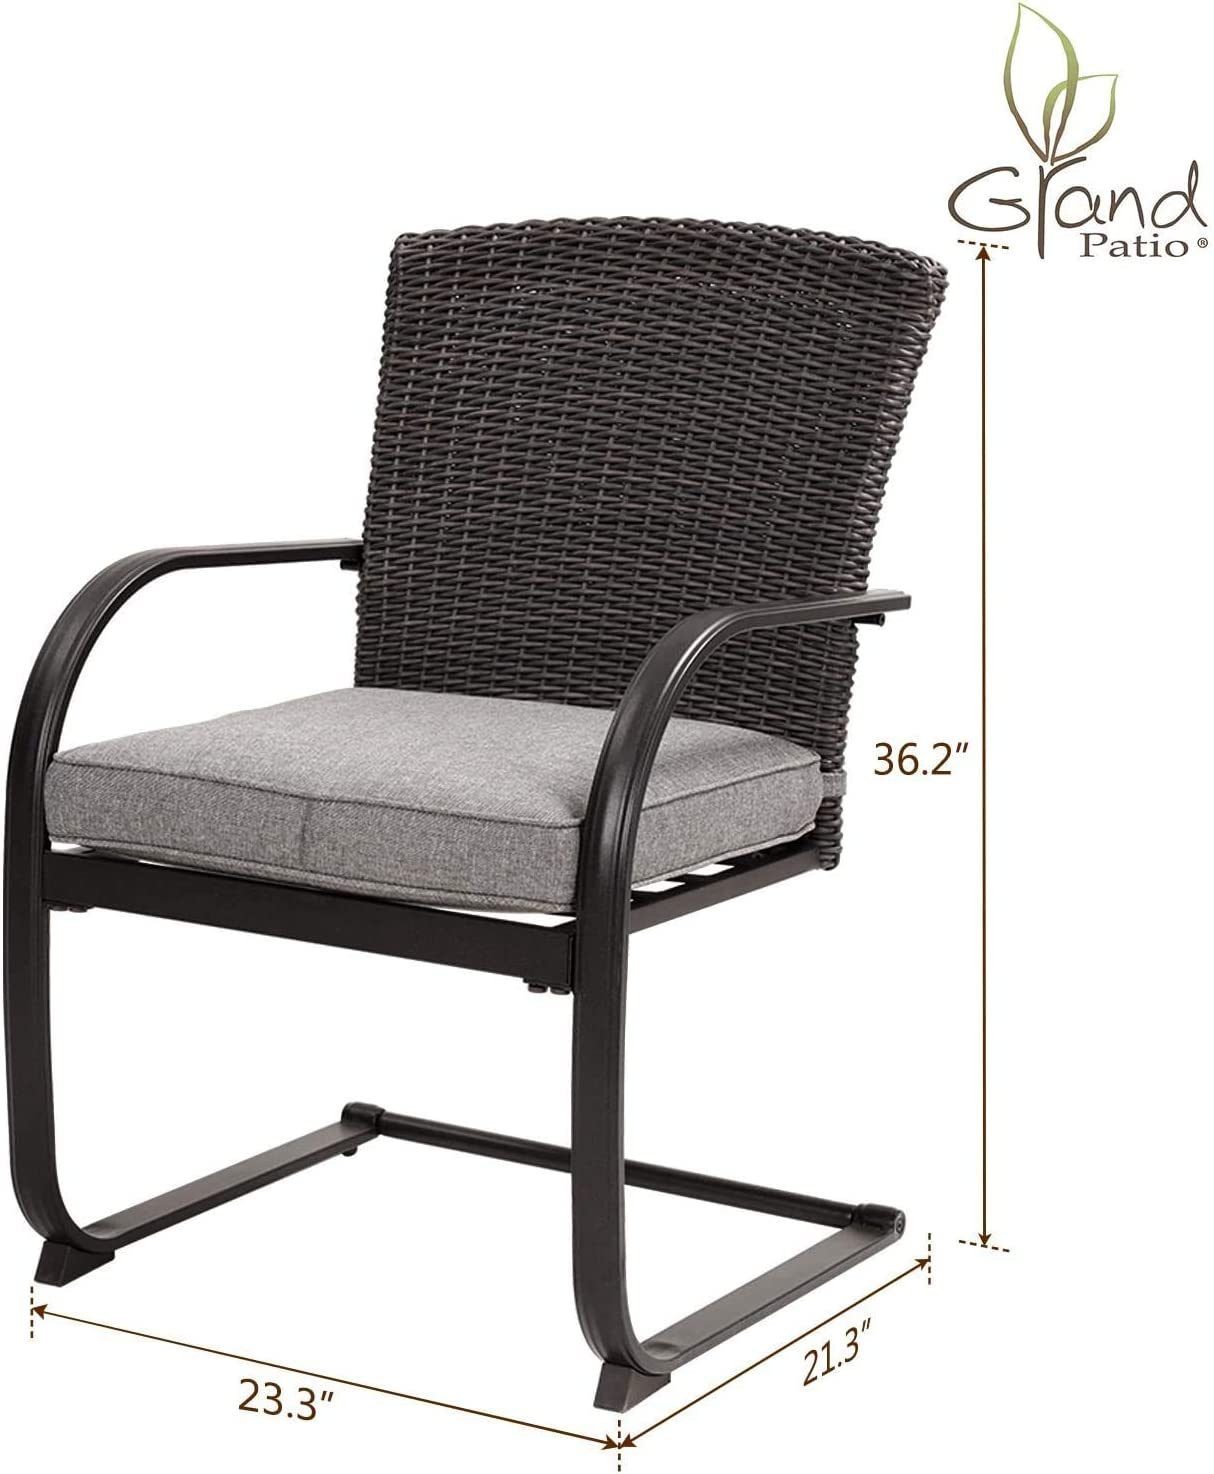 Grand patio Spring Motion Patio Dining Wicker Chairs Set of 2 Outdoor Deck Garden Pool Backyard Metal Chair with Grey Cushion